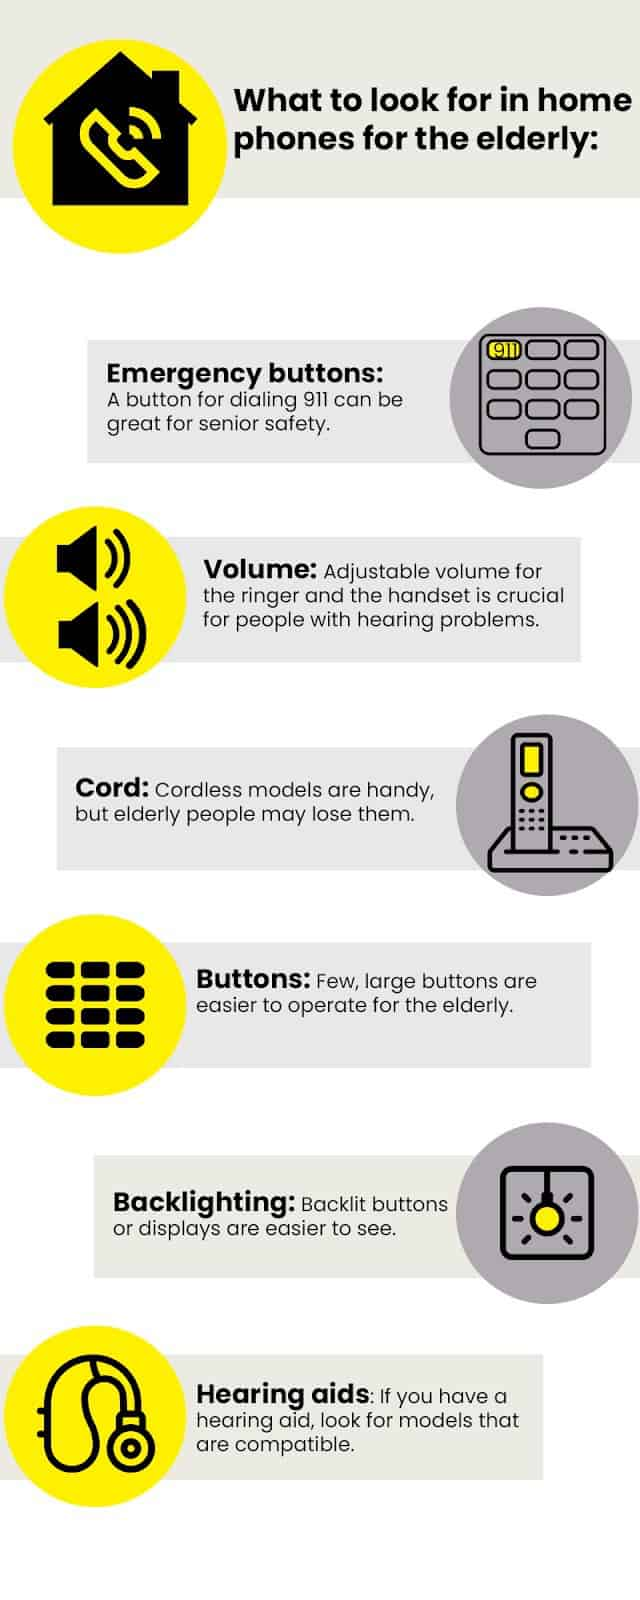 Best Home Phones for the Elderly infographic